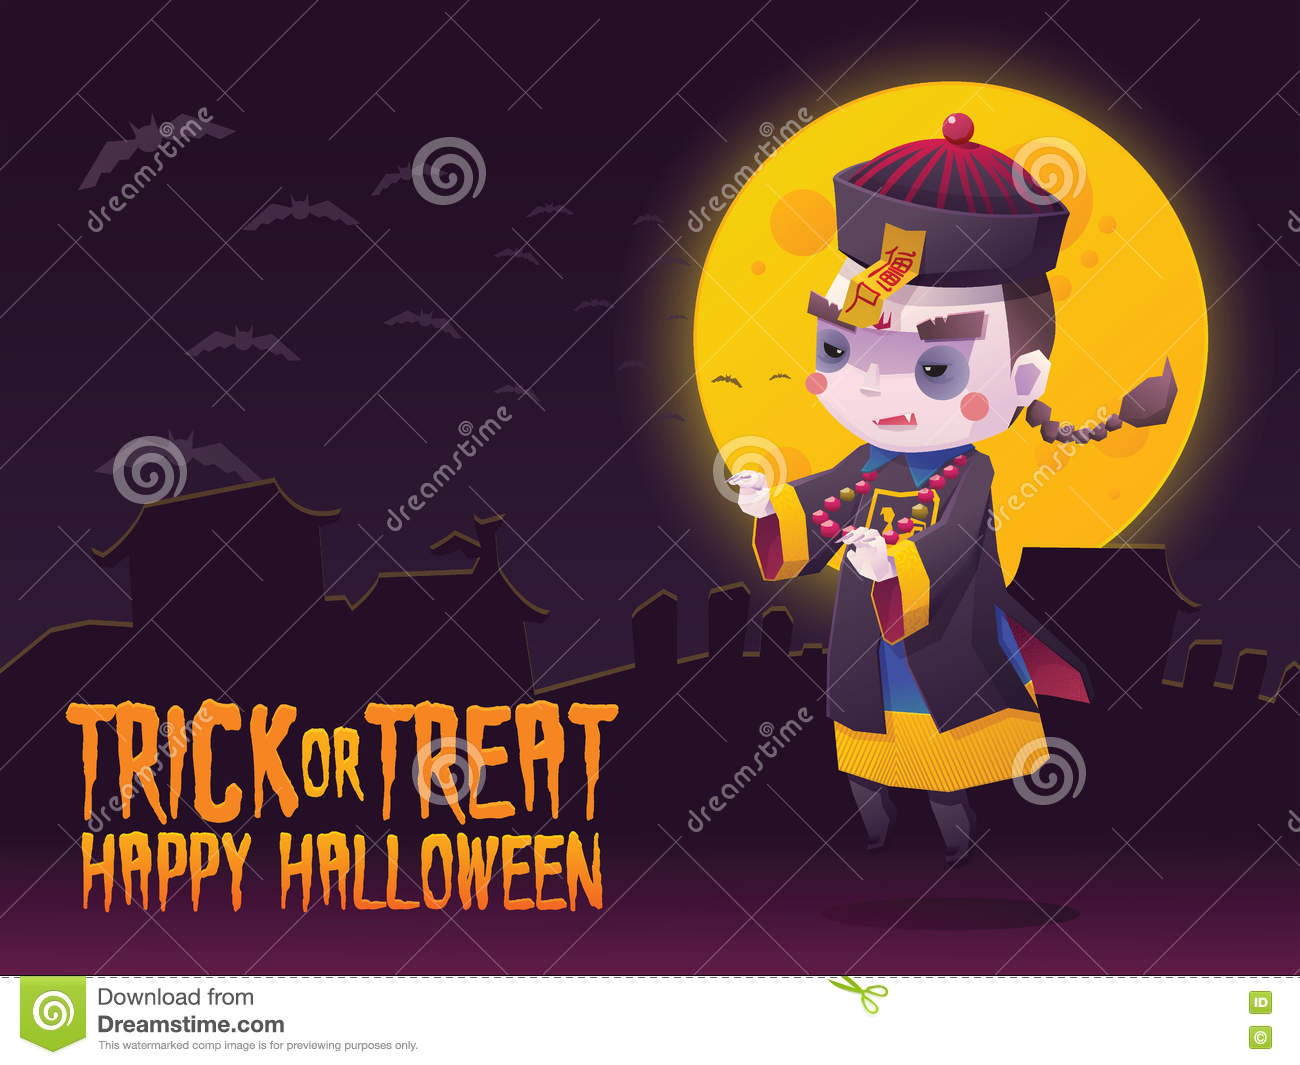 how to say trick or treat in chinese